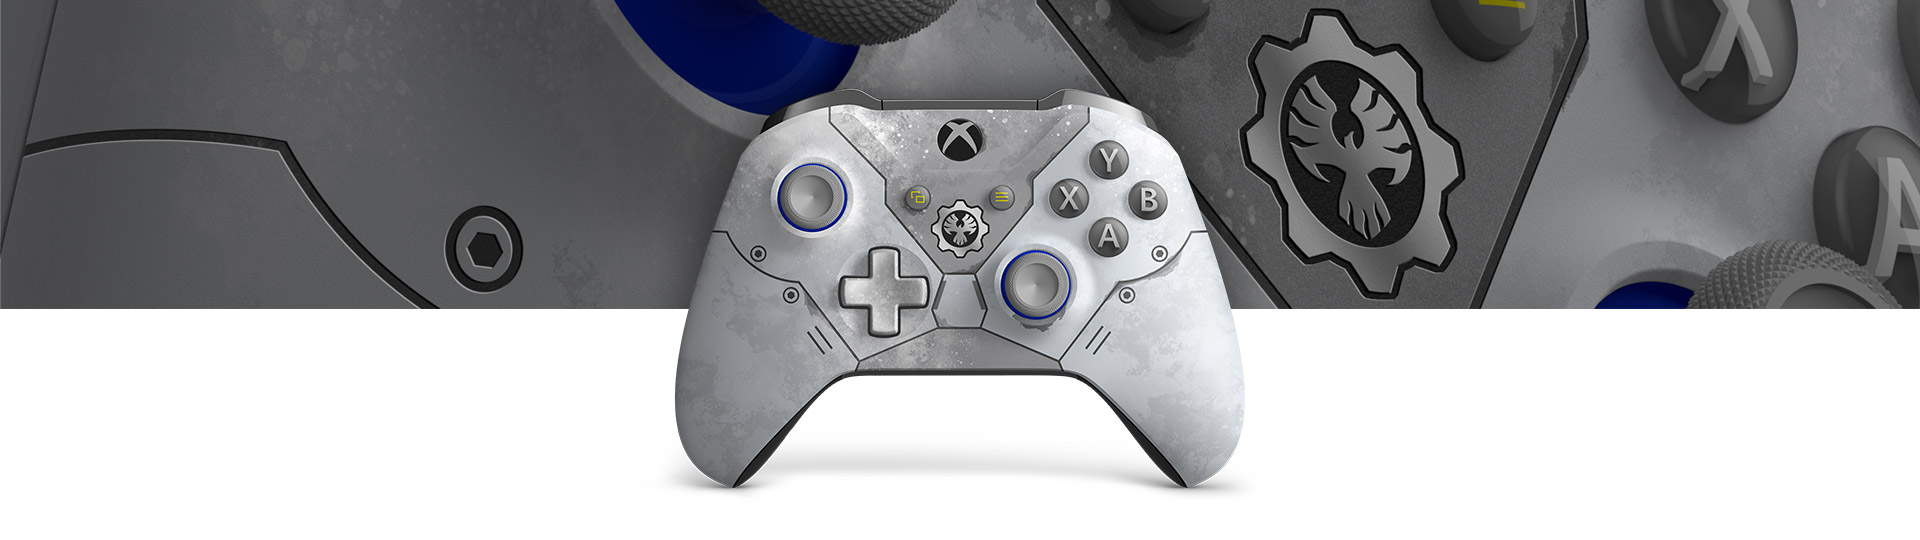 Front view of Xbox Wireless Controller – Gears 5 Kait Diaz Limited Edition with a closeup of snow weathered controller surface texture